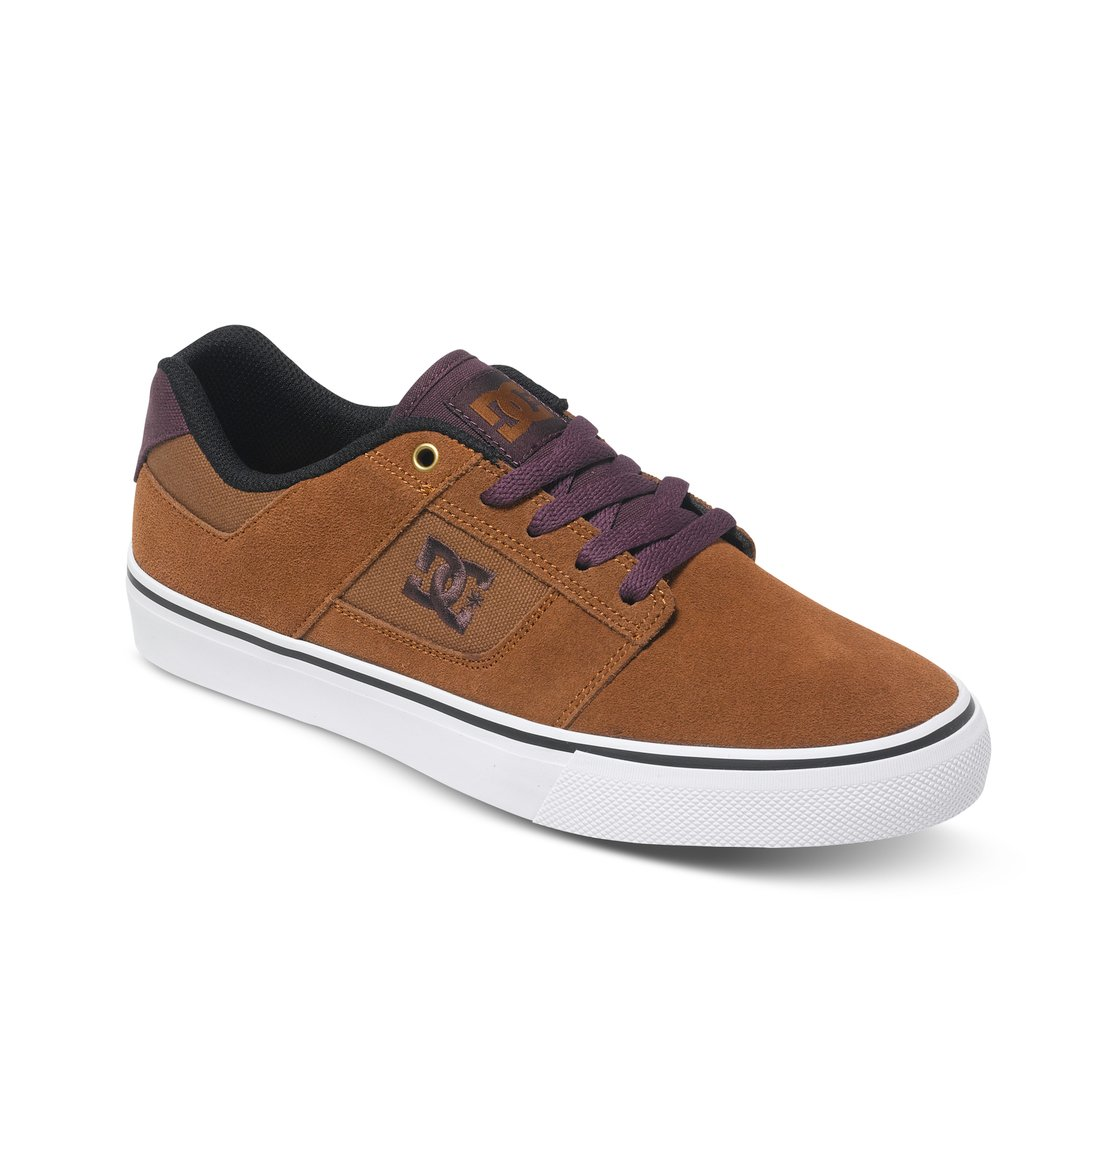 Bridge - Dcshoes������ ������� ���� Bridge �� DC Shoes. <br>��������������: ���� �� ����� ��� ��������, ������� ������� DC, ��������� ��� �������� � ������������� ����������, ����������������� ����������� ��� ����� ������� �������� �����, ������������� ���������� �������, ��������� ������� ���������� ������� DC Pill Pattern. <br>������: ����: ���� / ���������: �������� / �������: ������.<br>